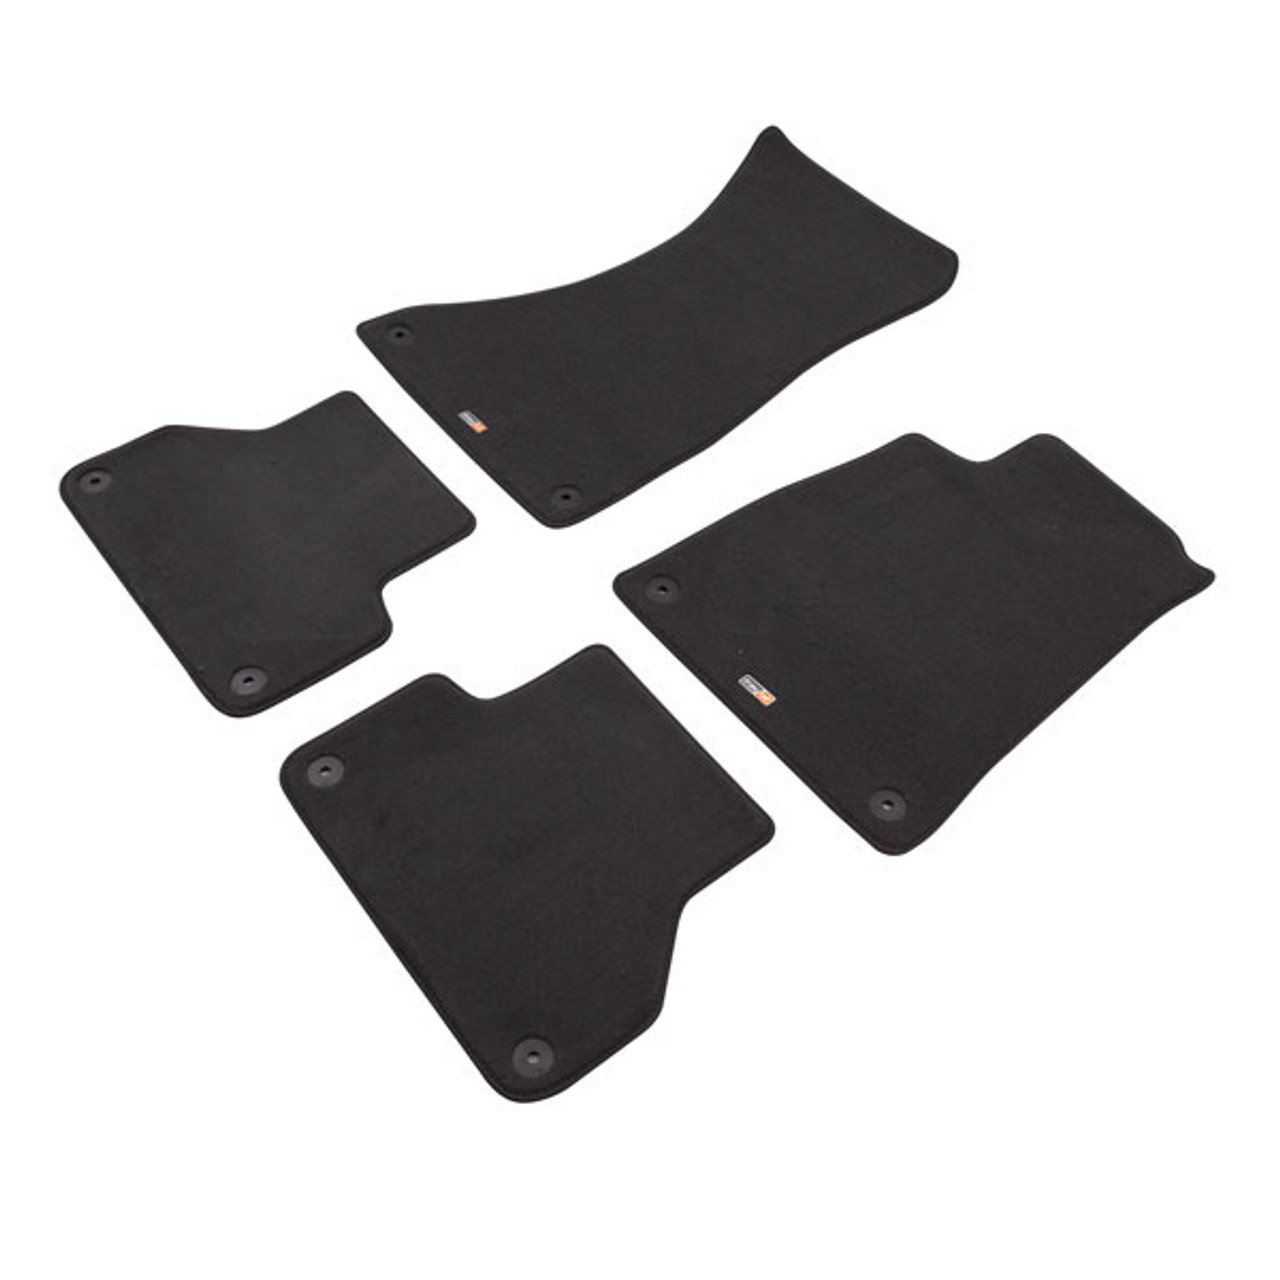 Custom Made Carpet Car Mats For Audi A4/S4 2015 onwards